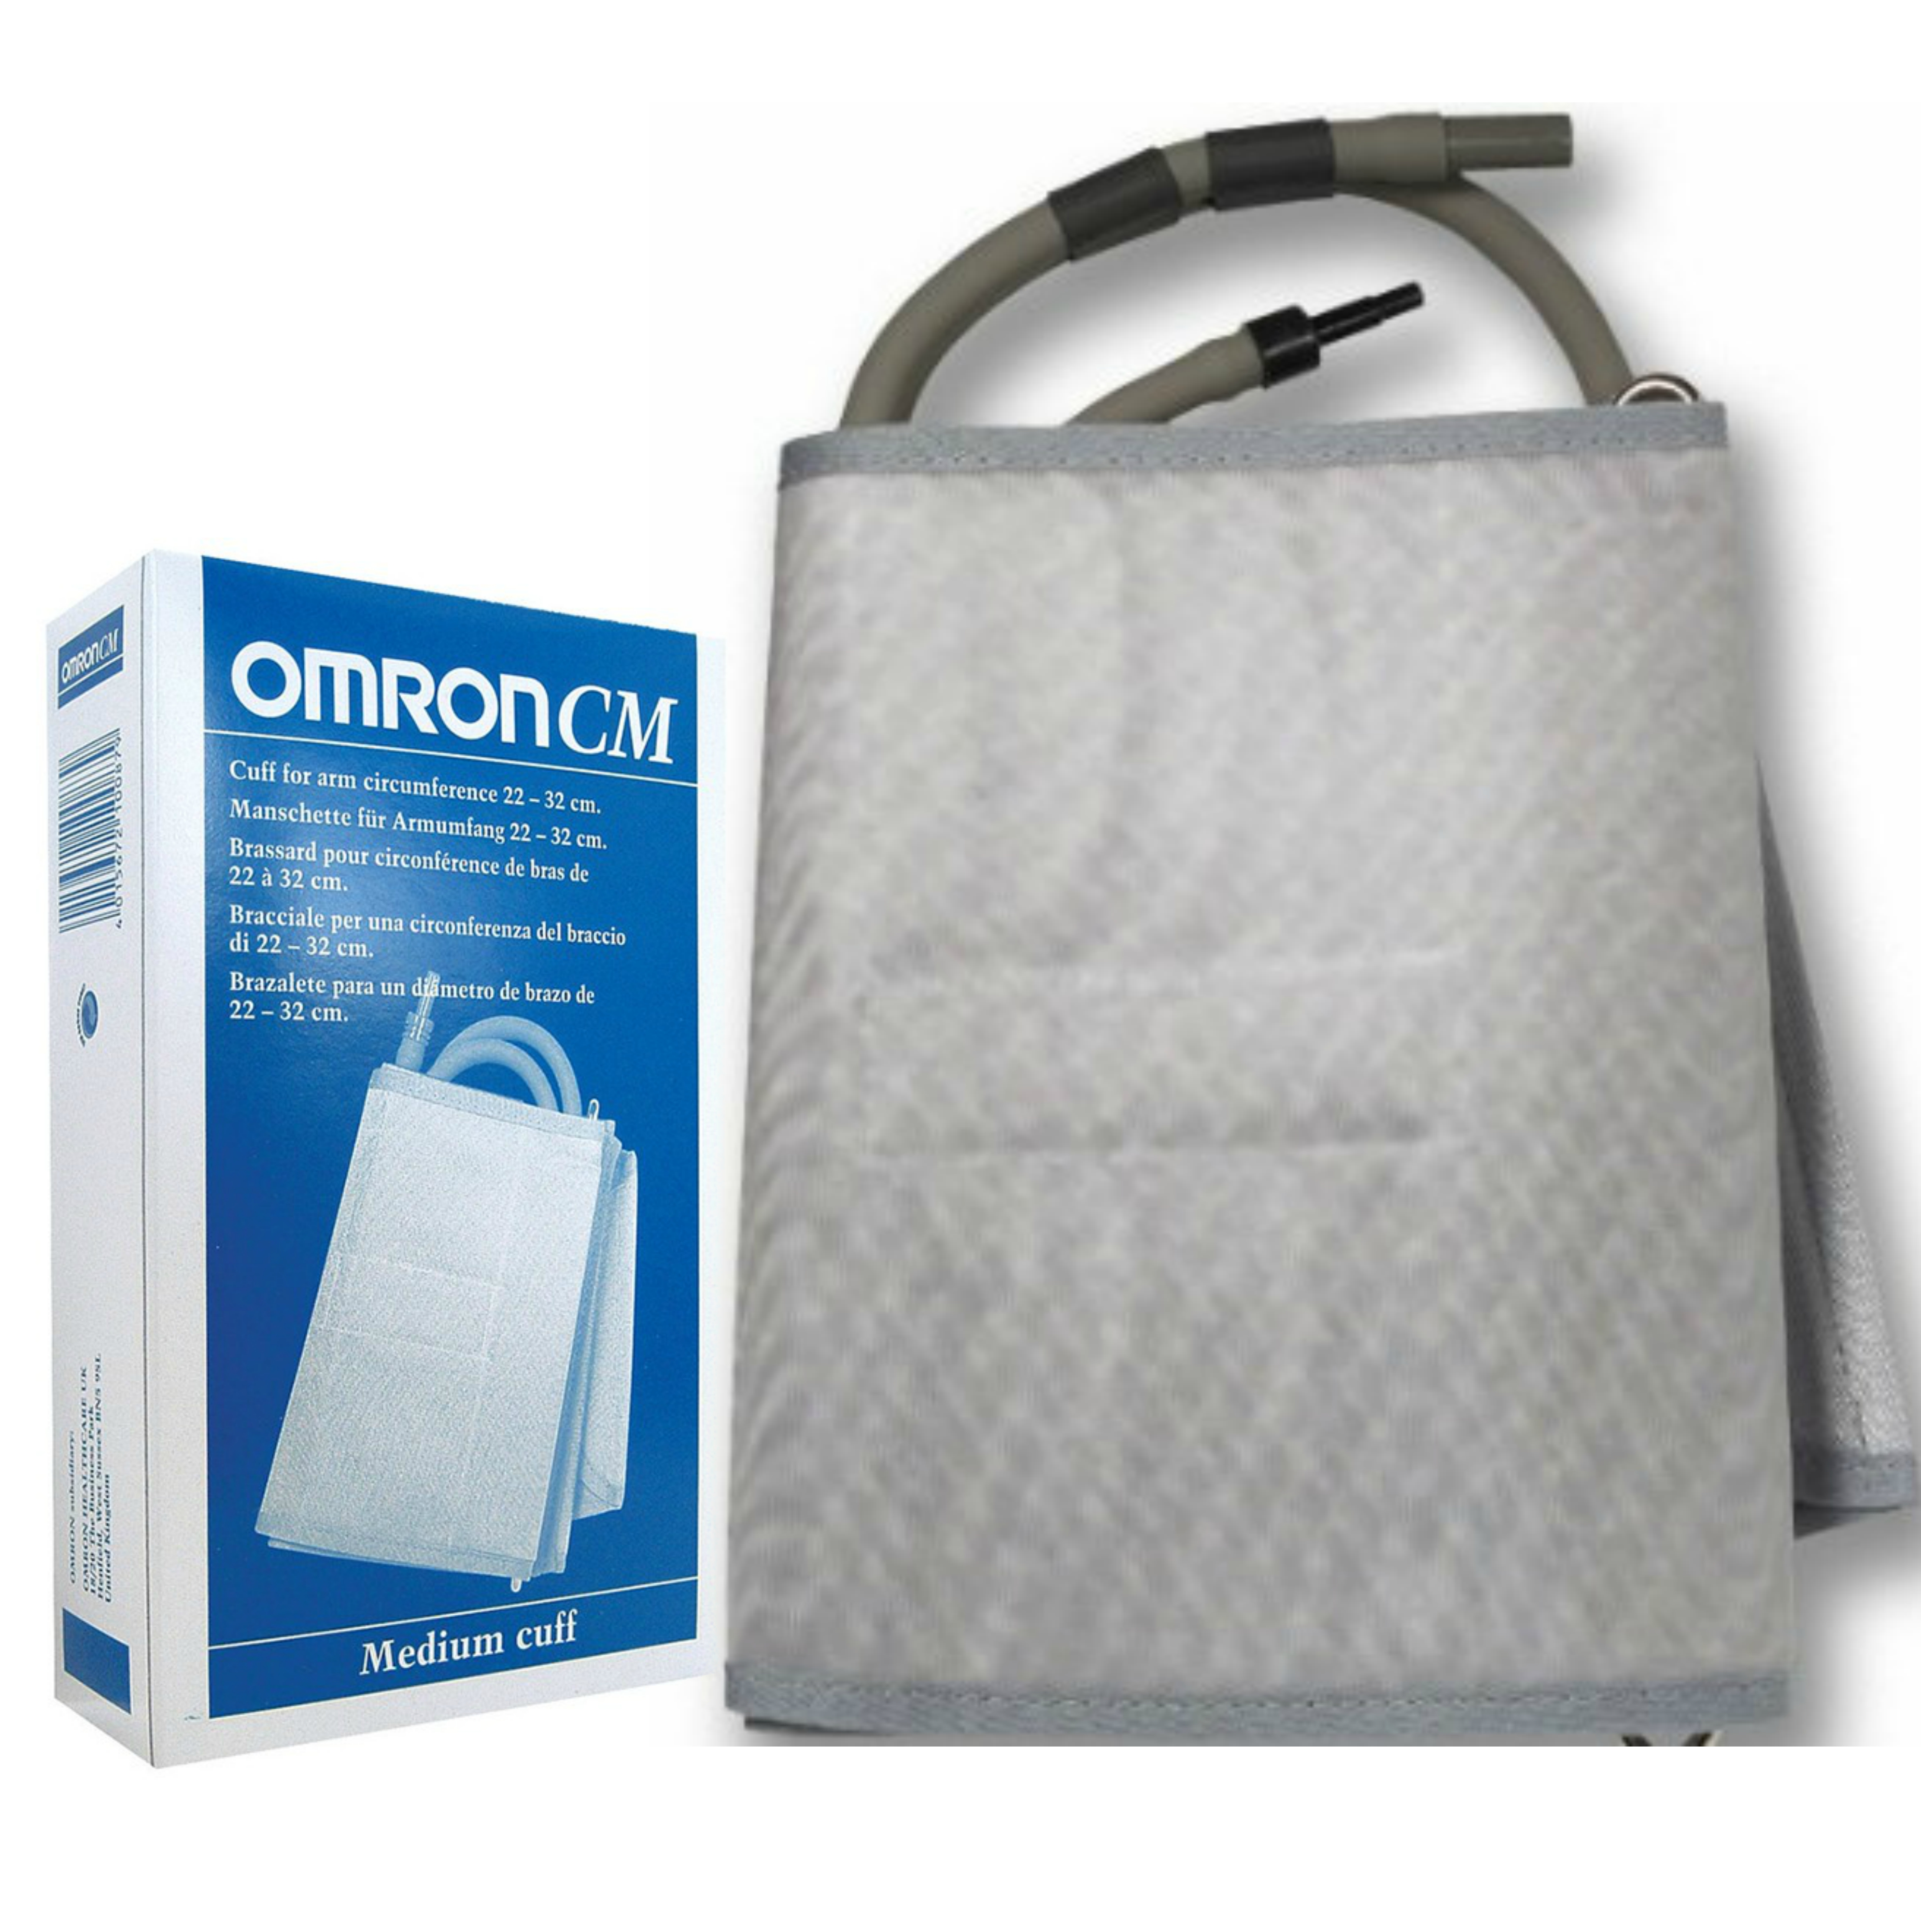 Omron Standard Cuff (22 - 32cm) for Blood Pressure Monitors